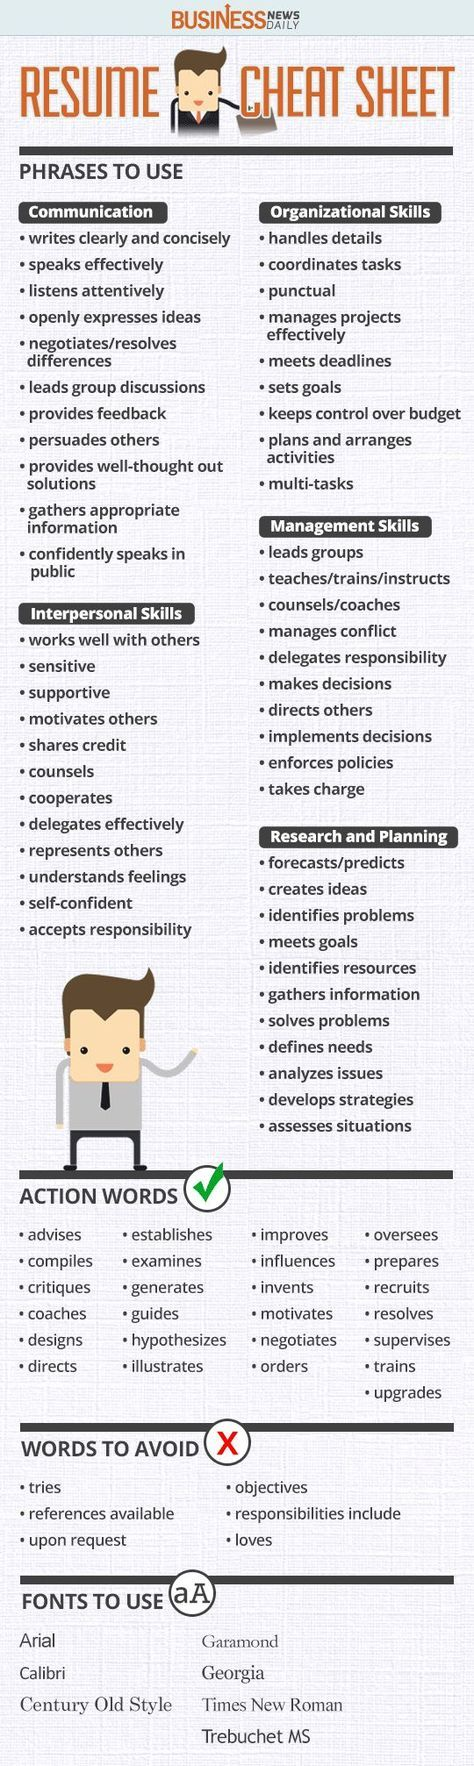 positive resume words